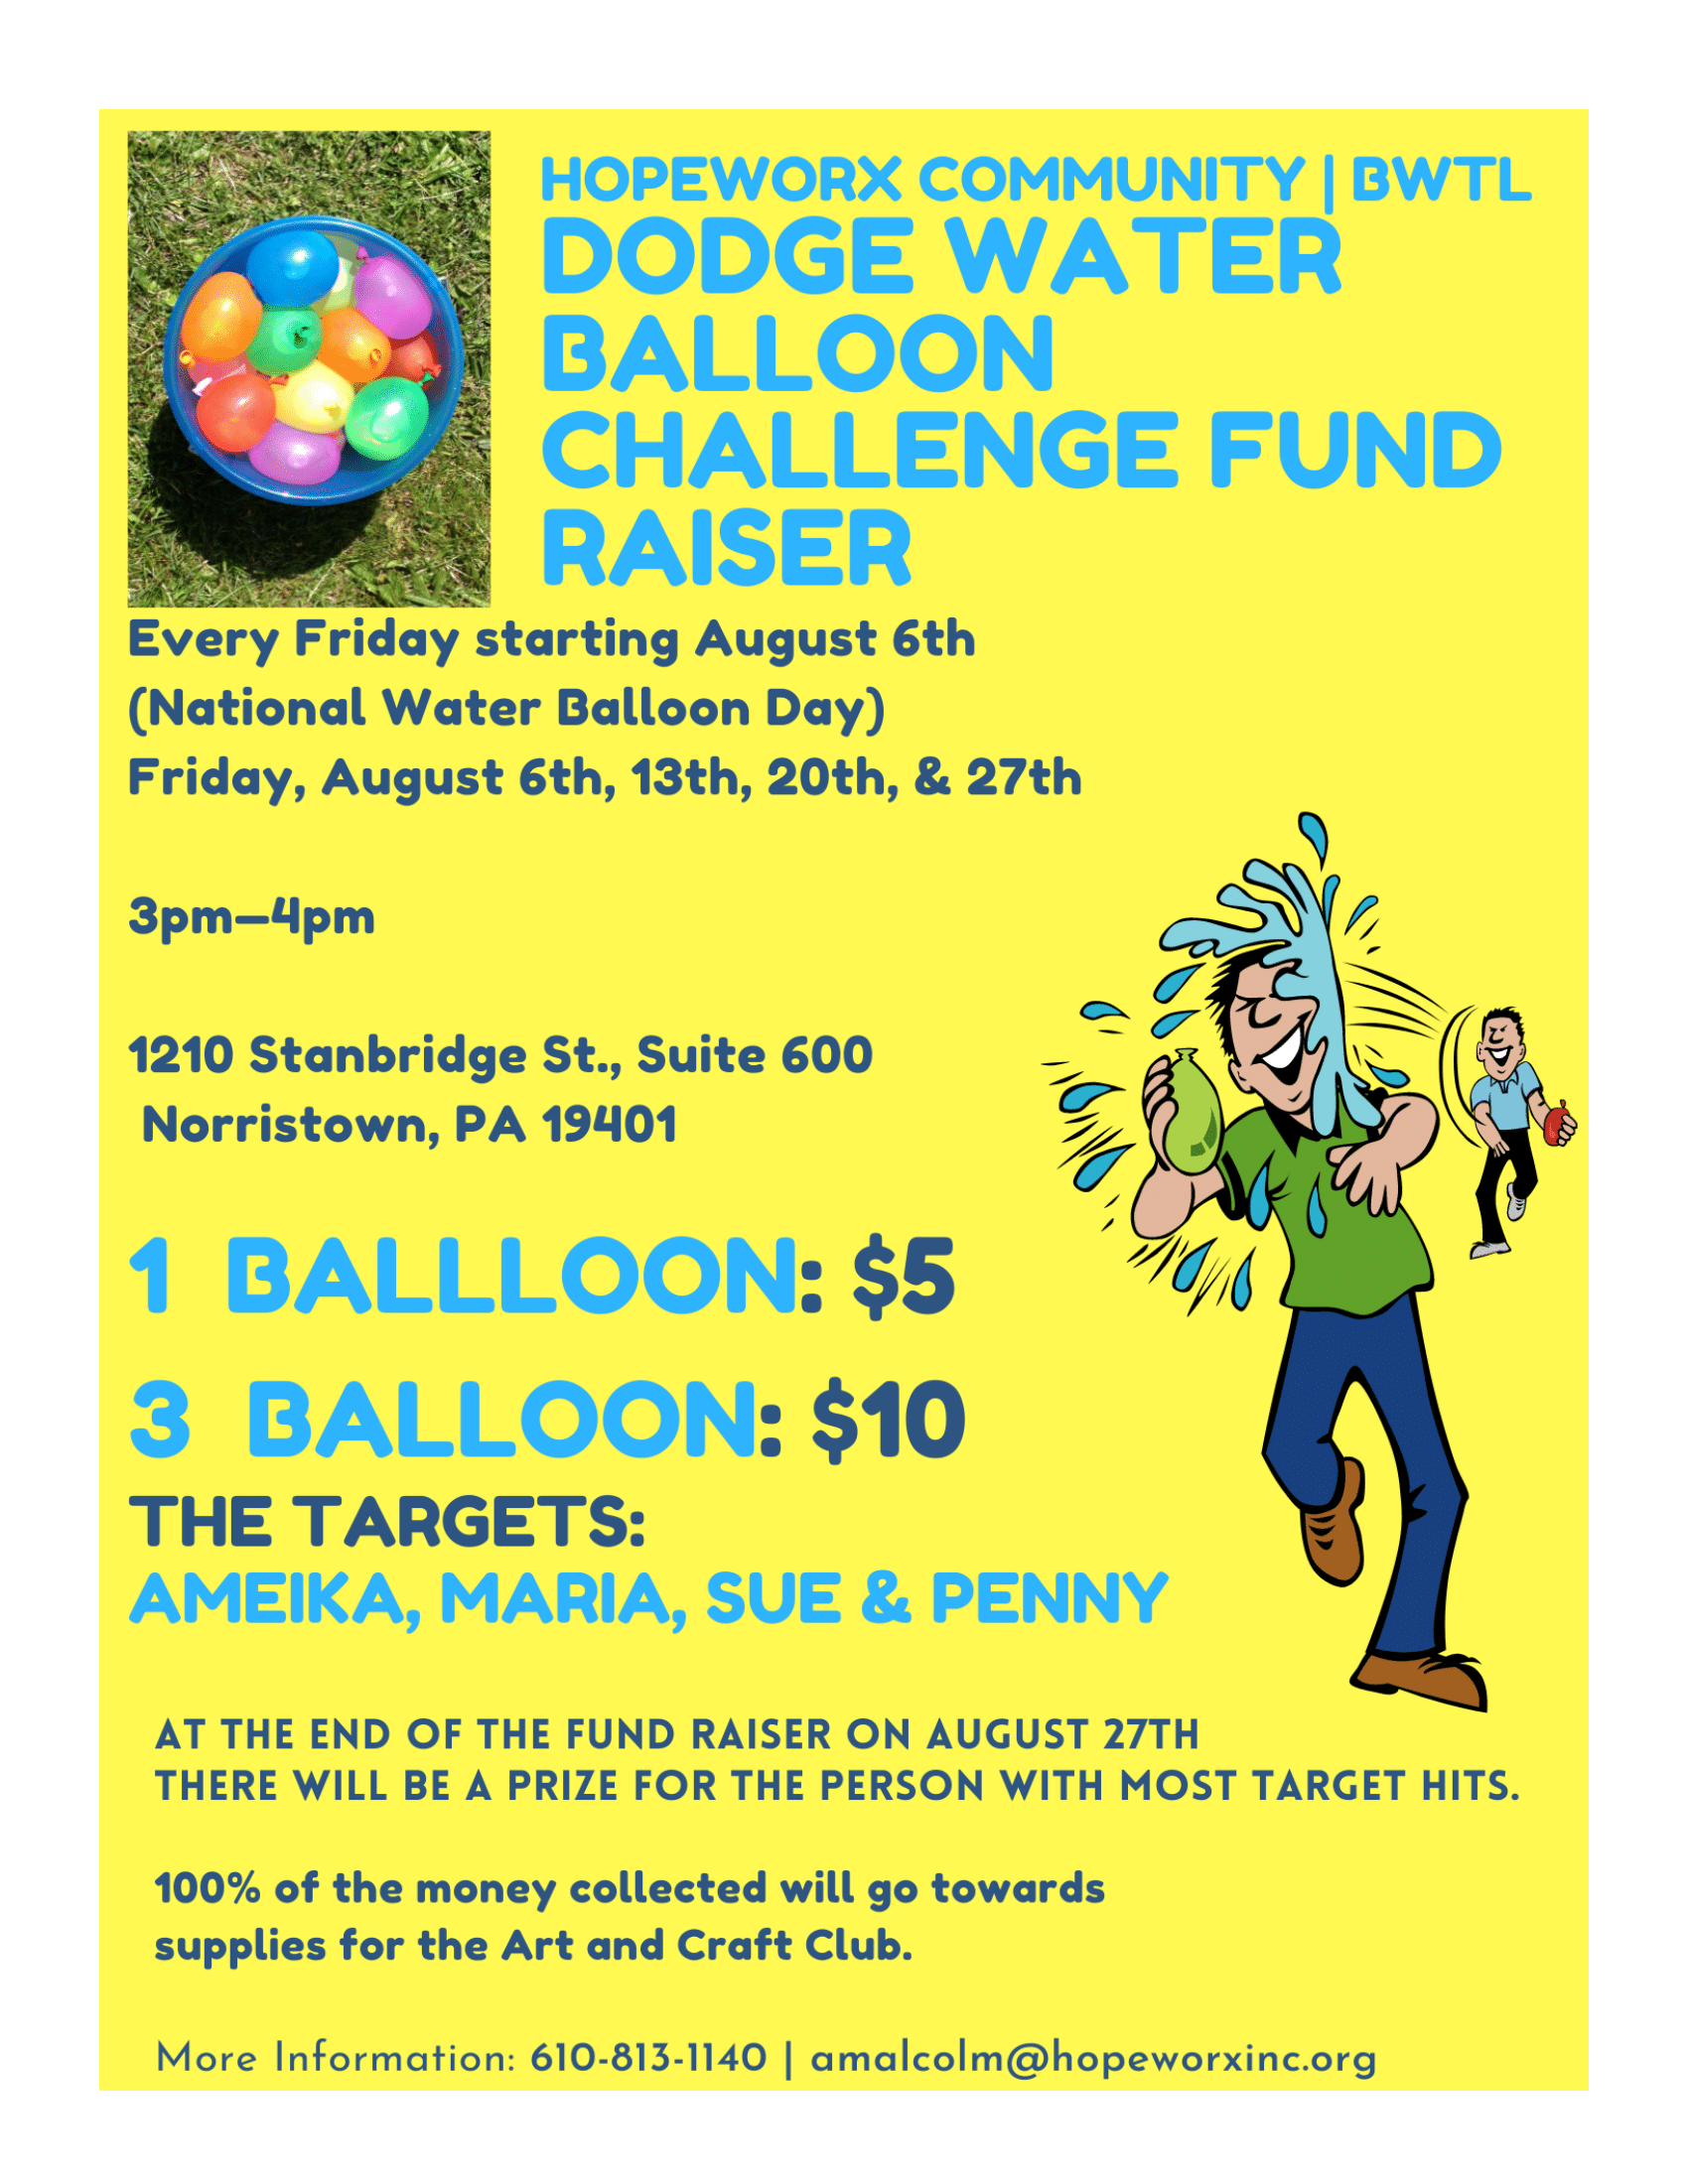 DODGE WATER BALLOON CHALLENGE – Let's put some fun in fundraisers!